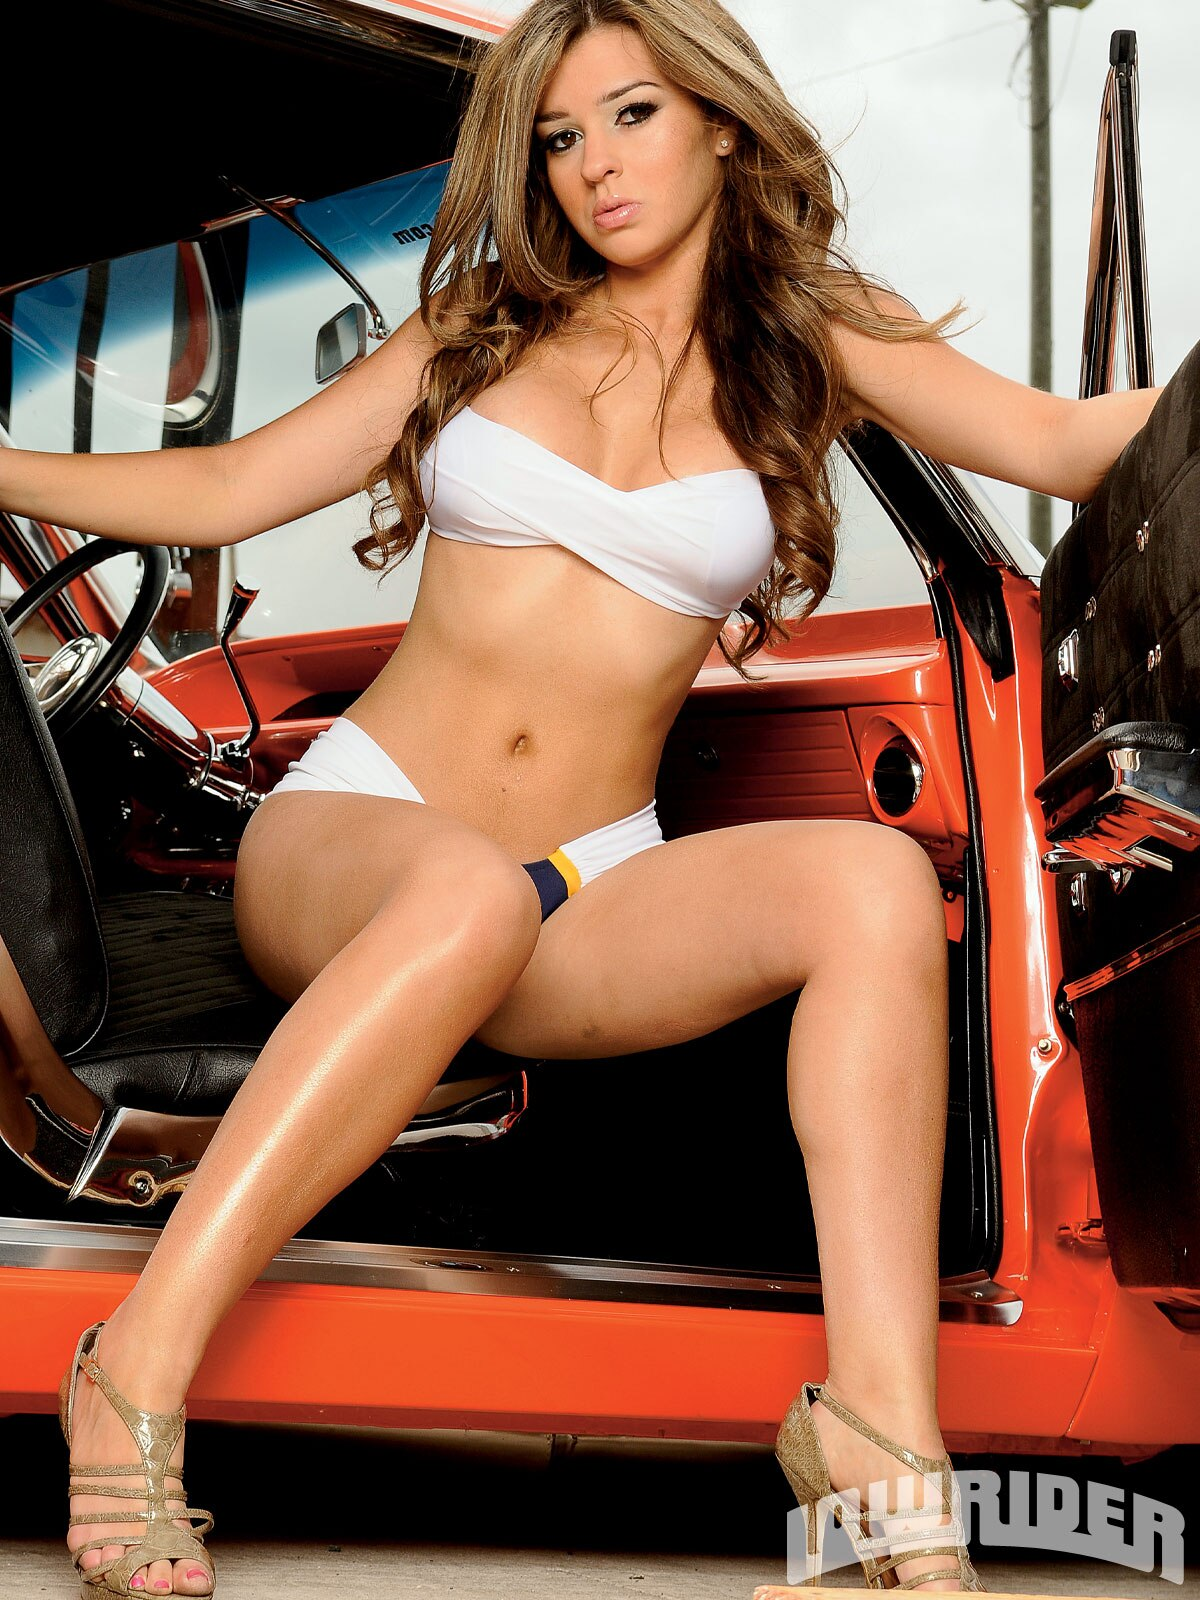 Girl With Bike Hd Wallpaper Shanna Amp Elizabeth Lowrider Girls Models Lowrider Magazine